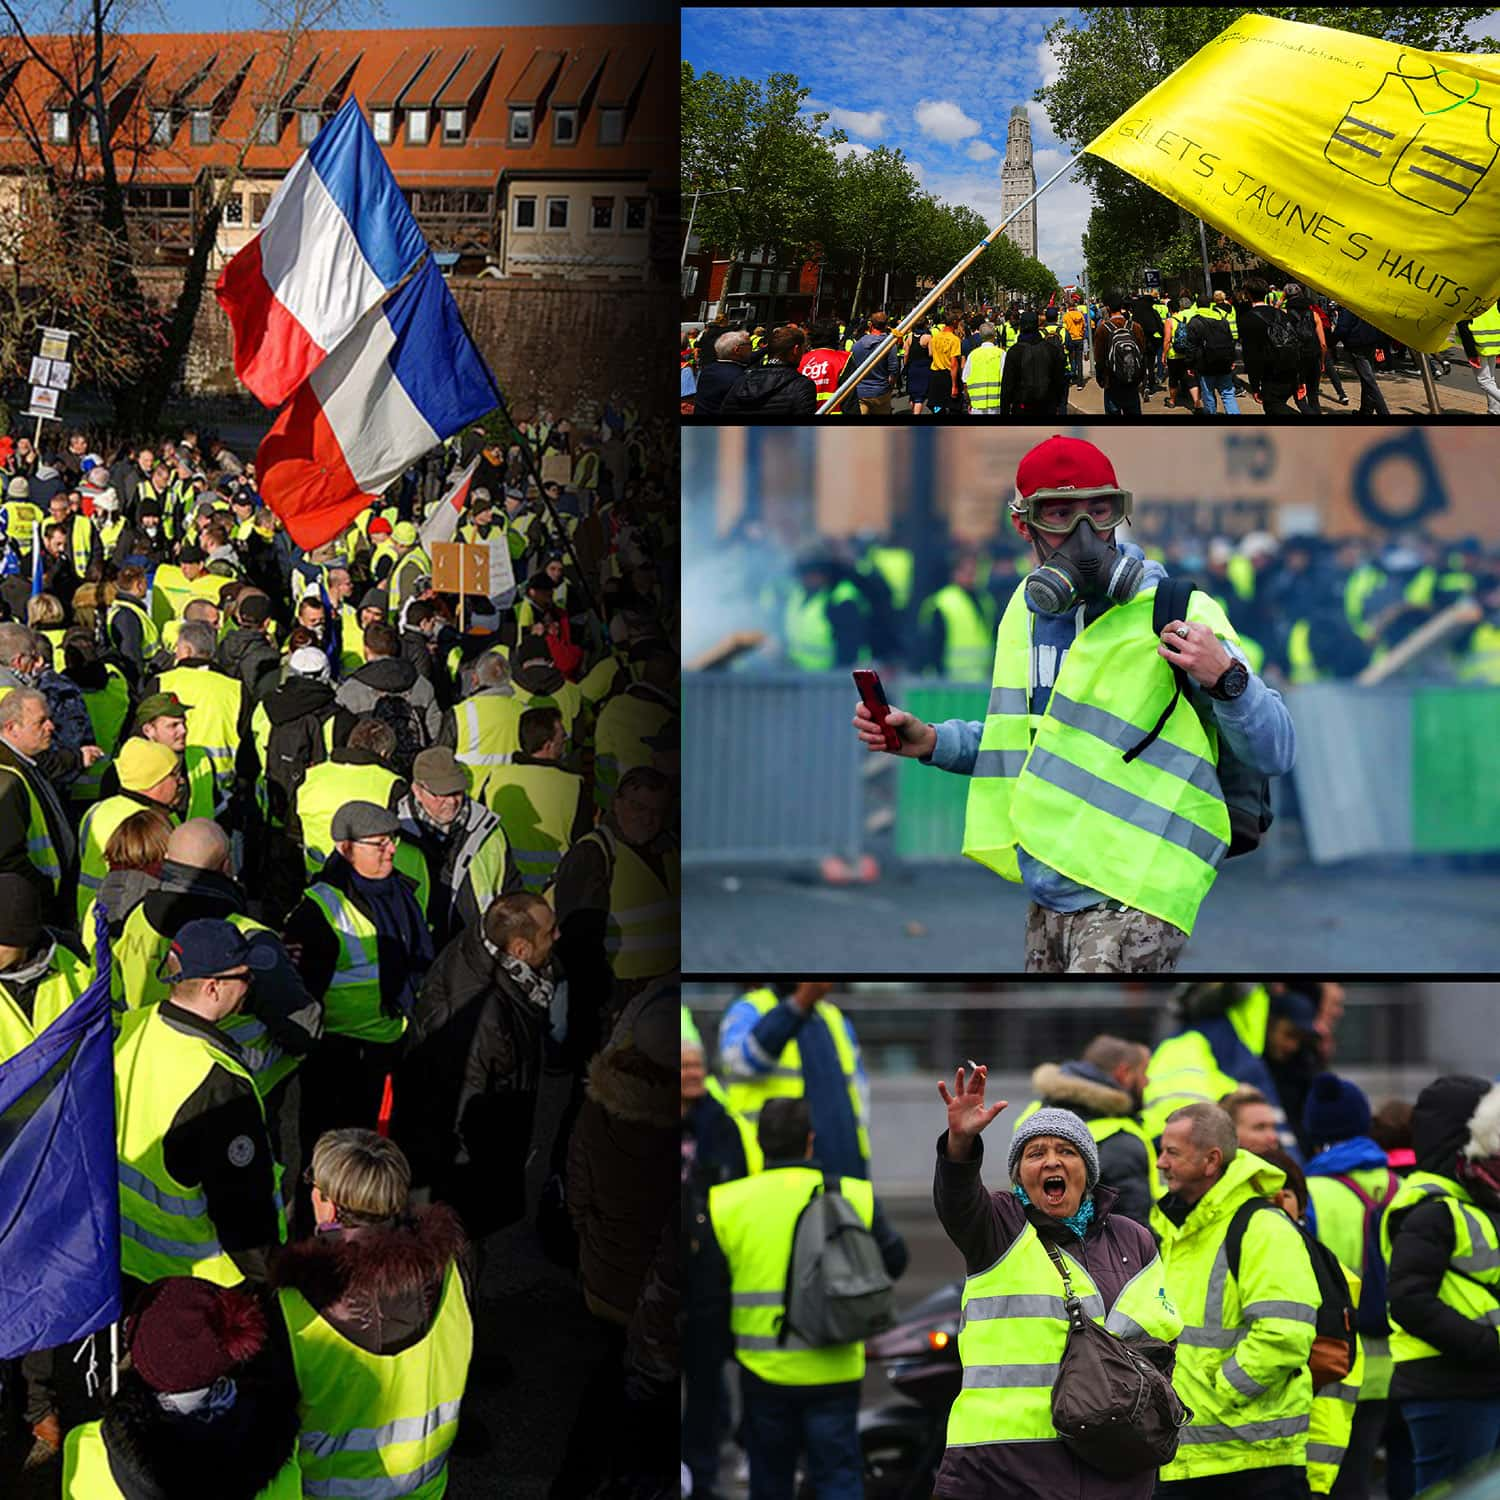 Gilets Jaunes - Yellow vests - movement in France